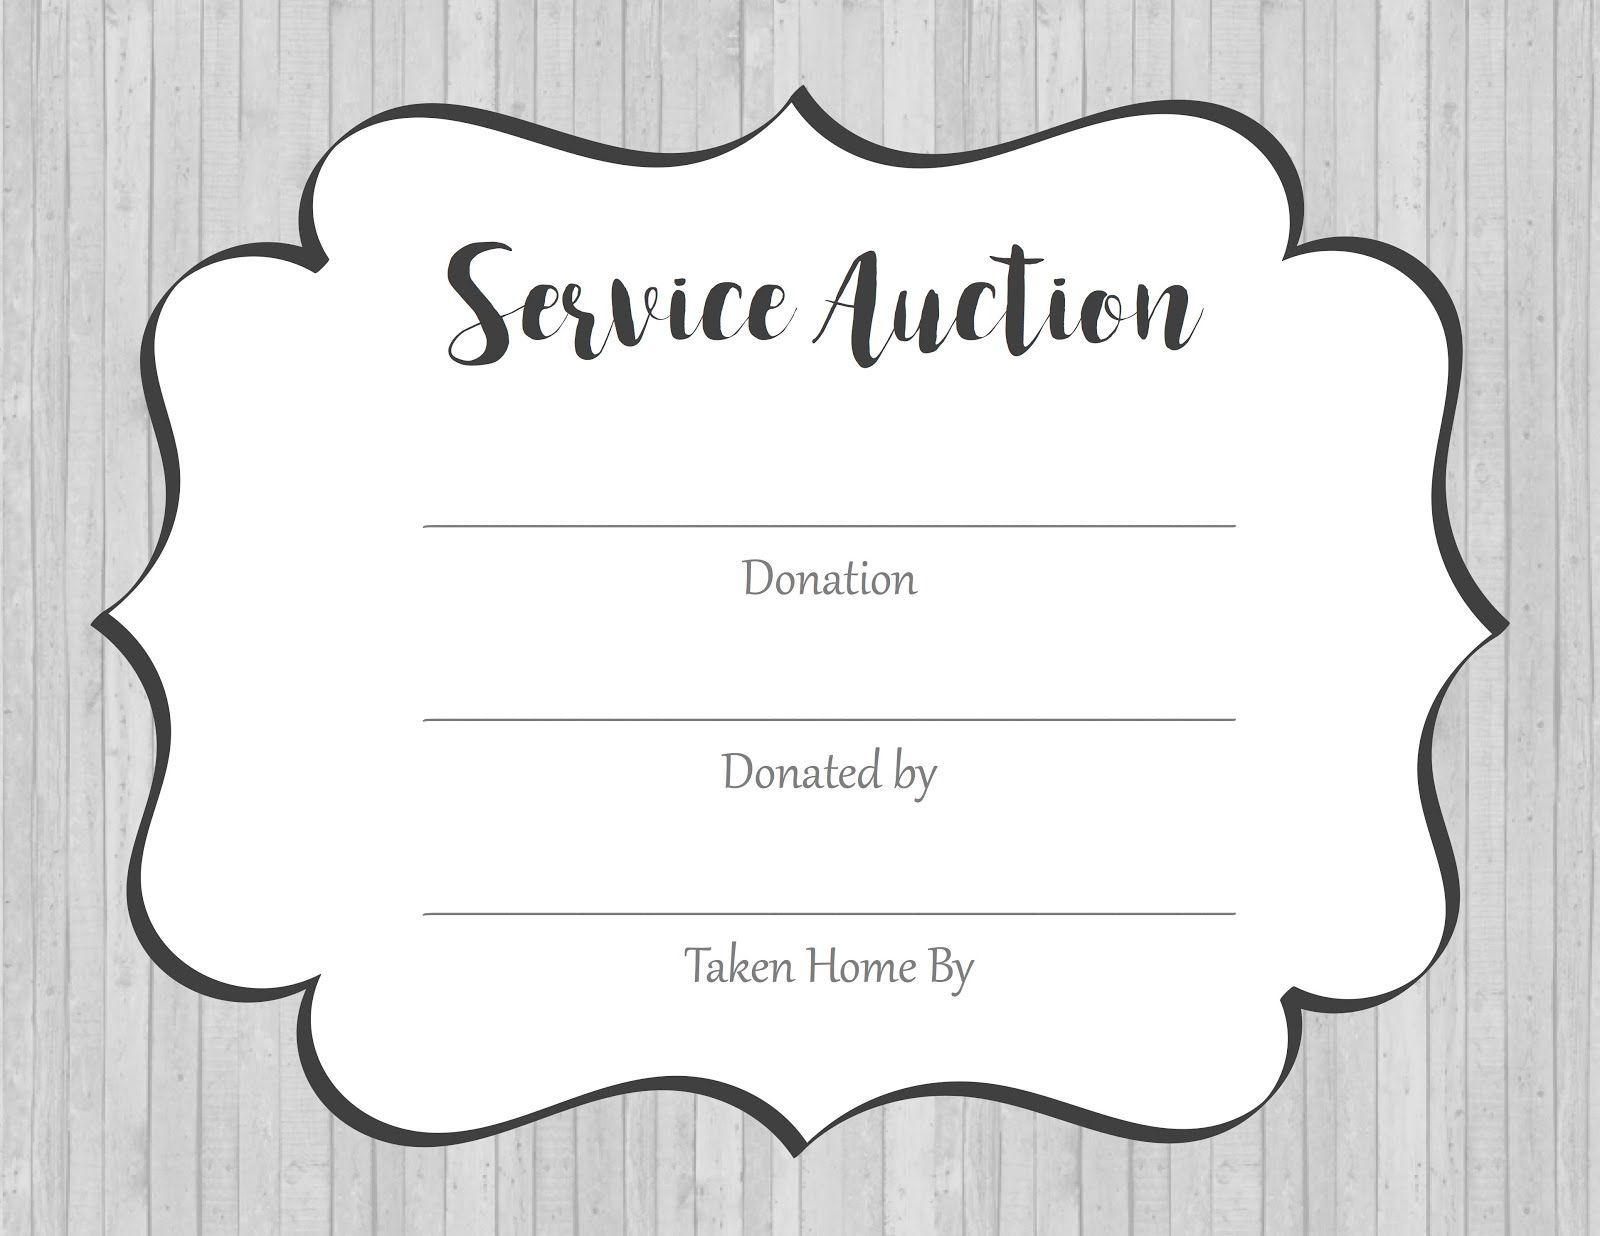 002 Marvelou Silent Auction Donation Certificate Template High Def Full